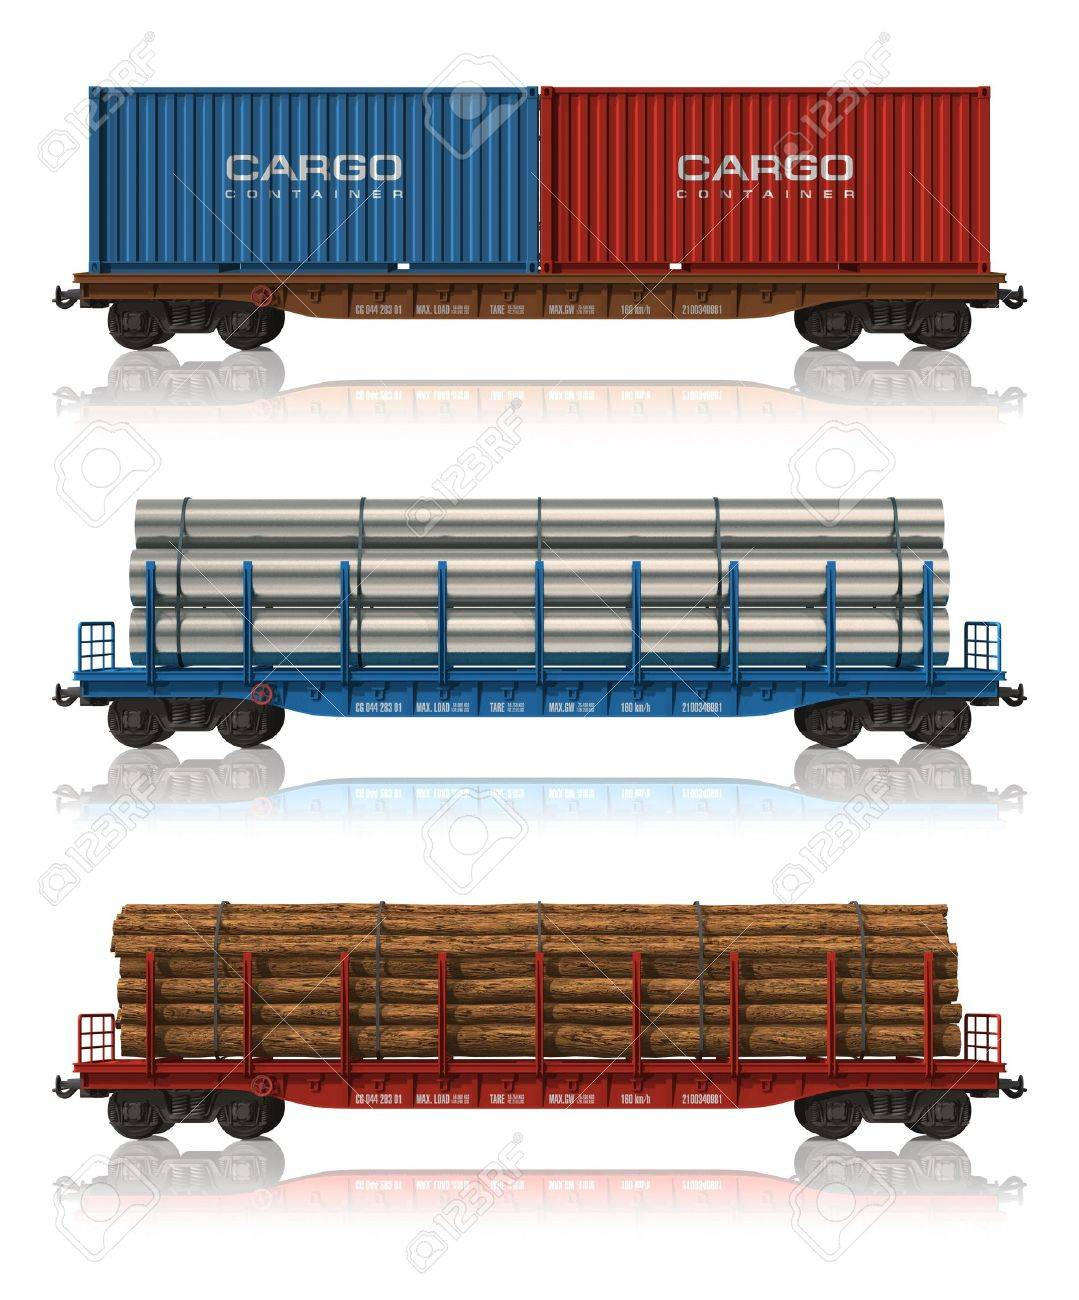 Set Of Freight Railroad Cars Stock Photo Picture And Royalty Free